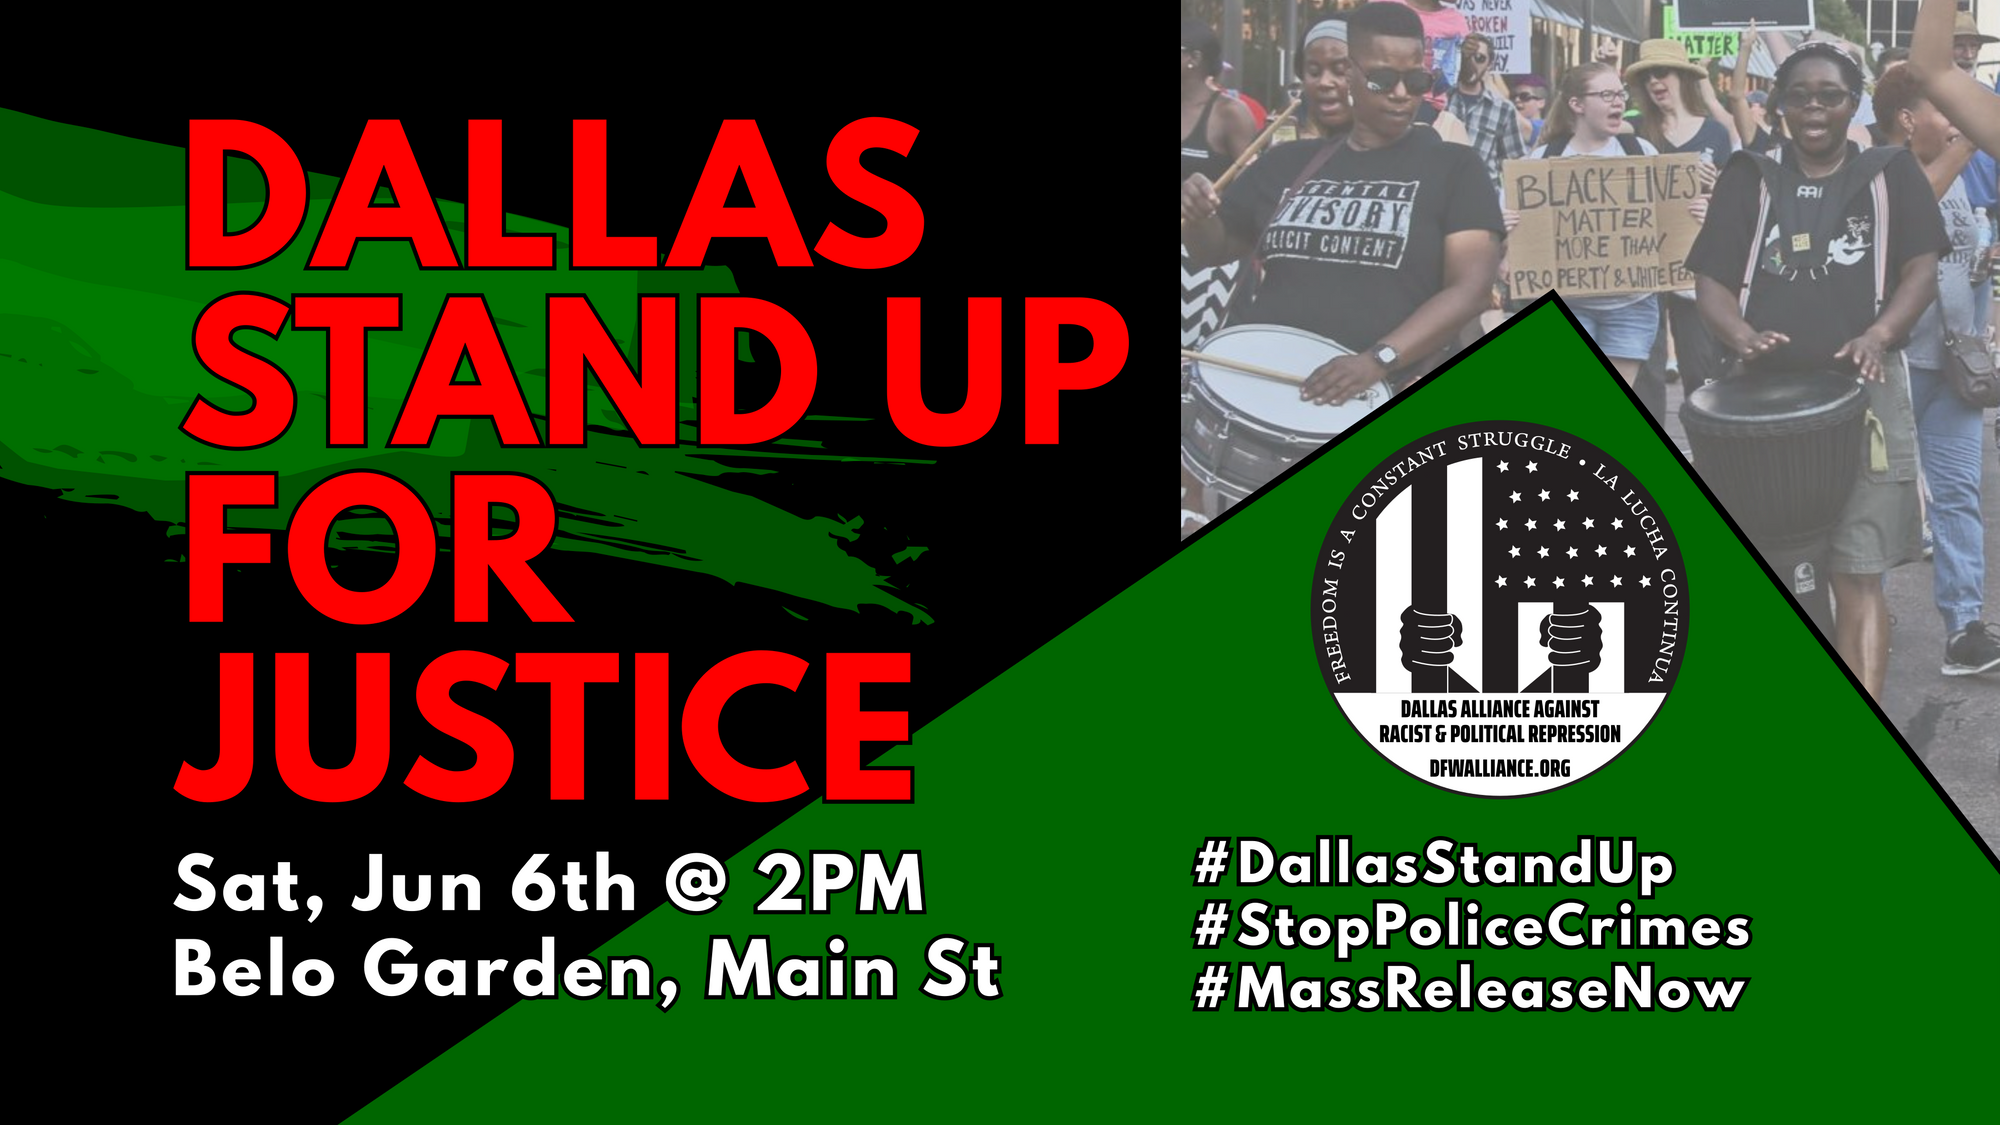 Dallas Stand Up for Justice